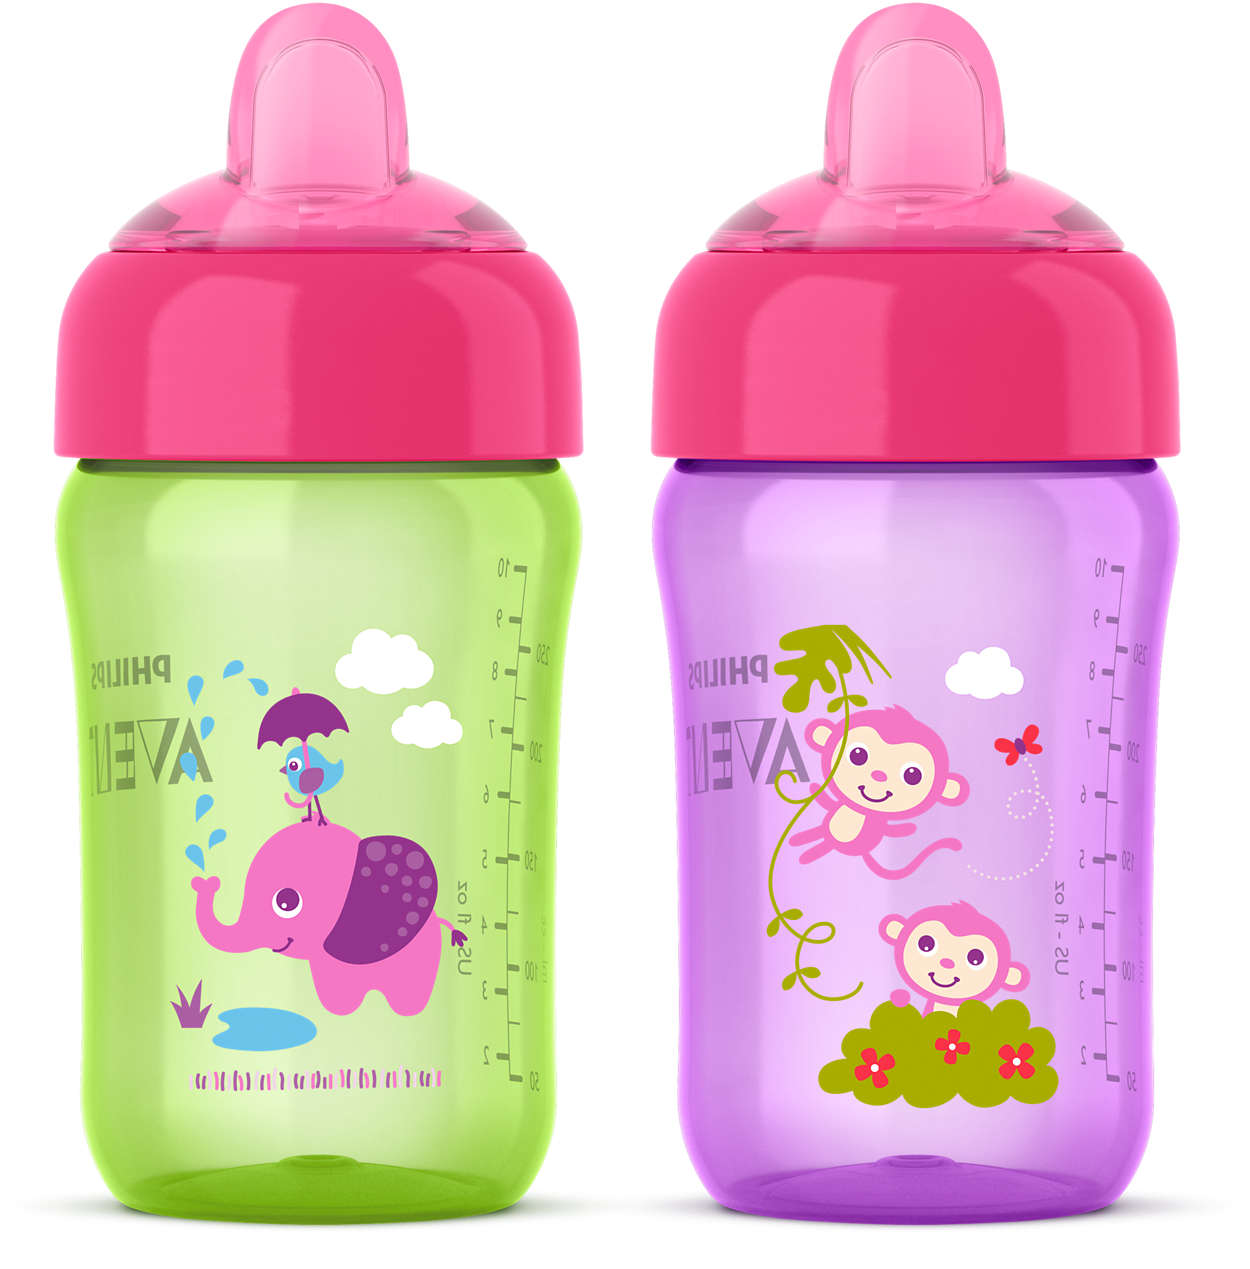 Avent Sippy Cup Tops : Spout cup scf avent